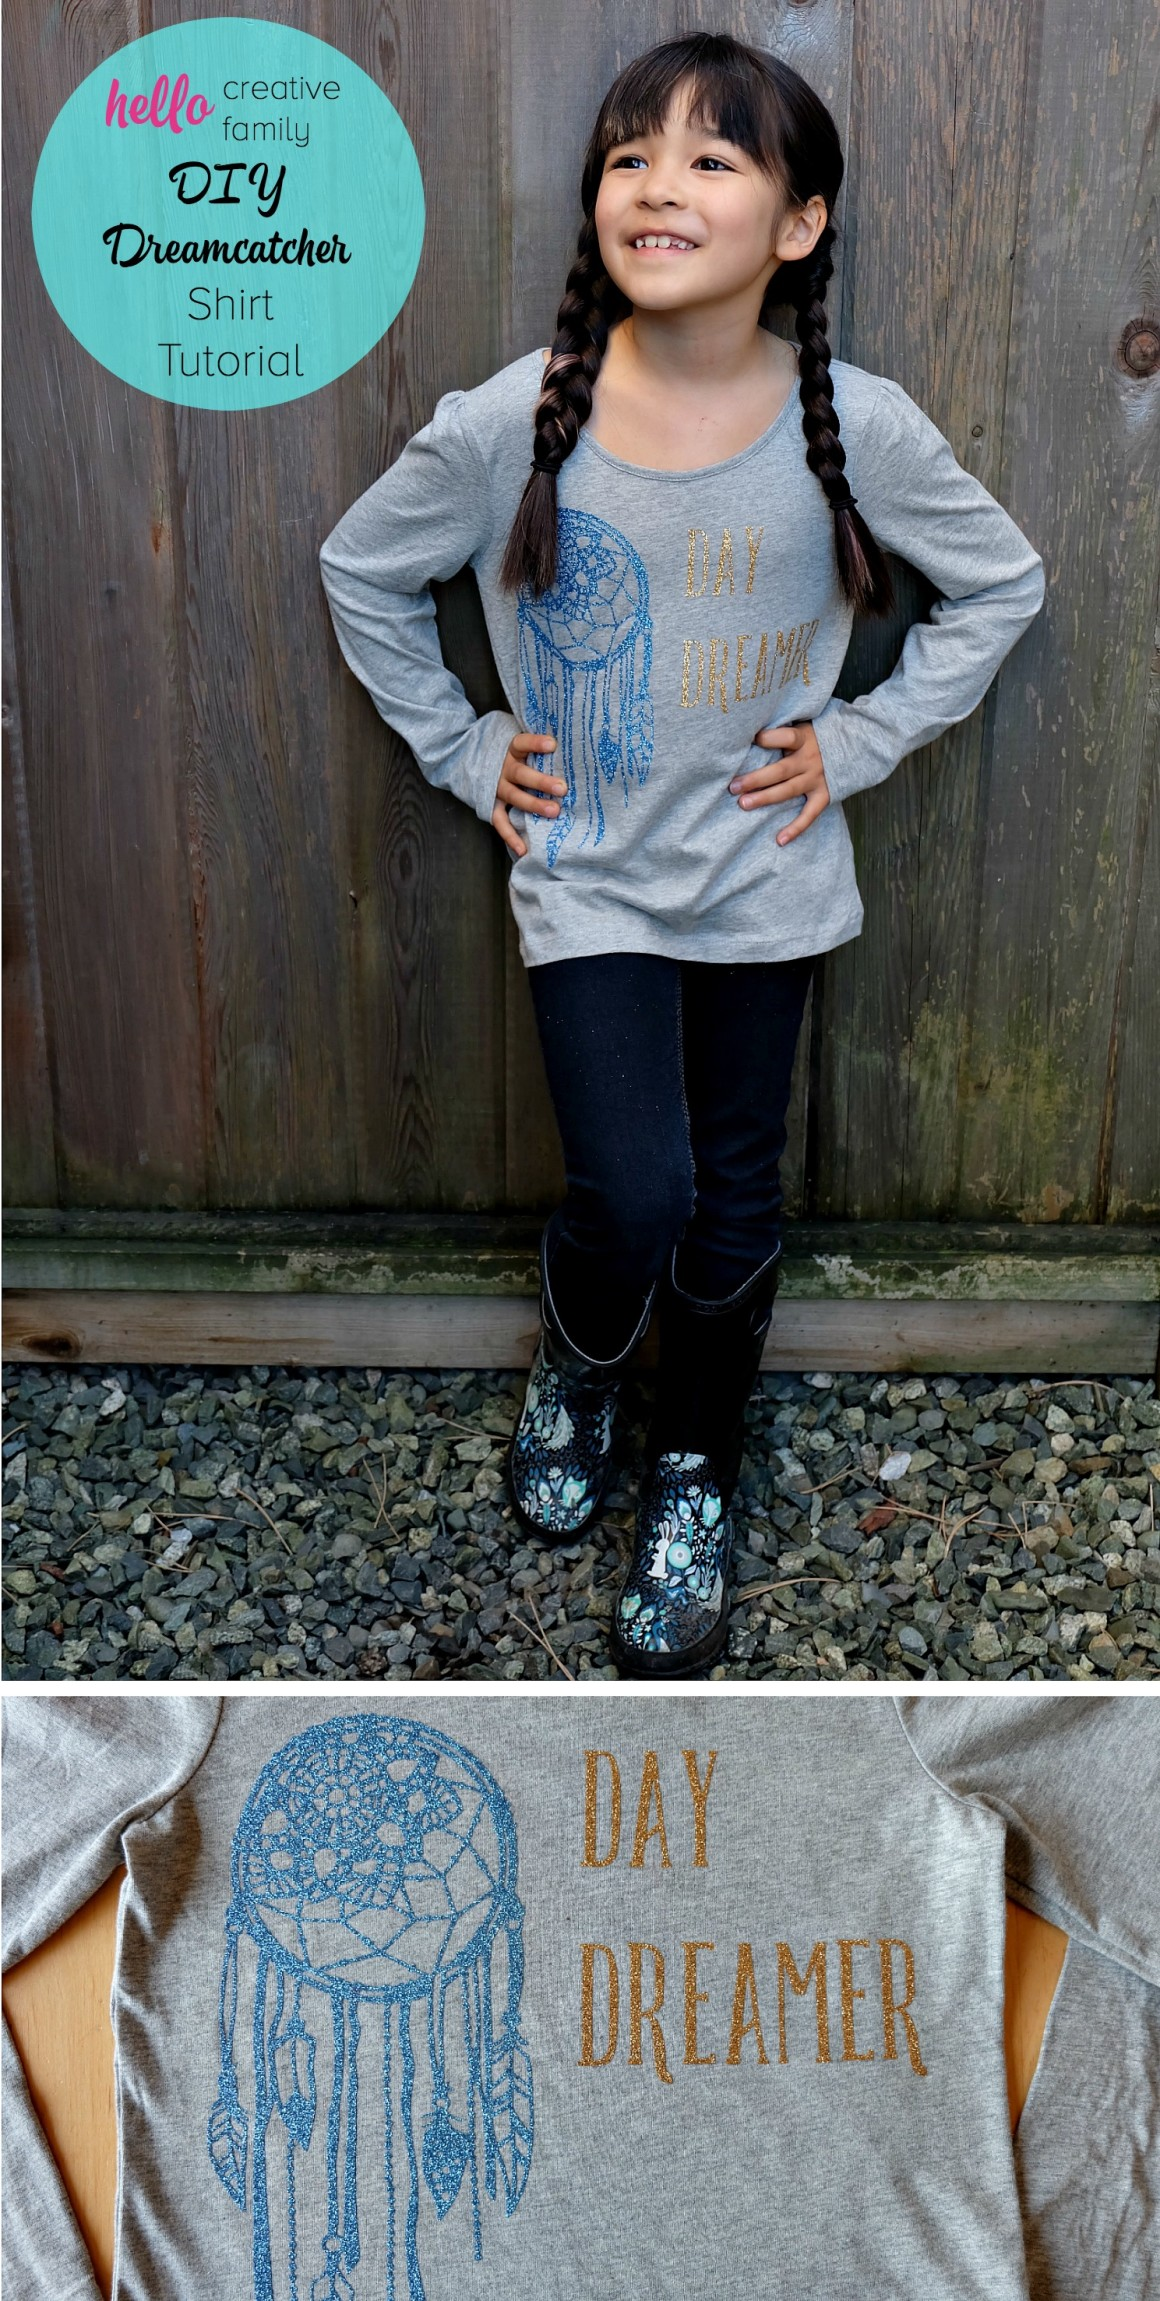 The perfect shirt for the dreamer in your life! This DIY Dreamcatcher shirt can be made in minutes using the Cricut Explore. The project says Day Dreamer and would be lovely for women's or children's clothing!